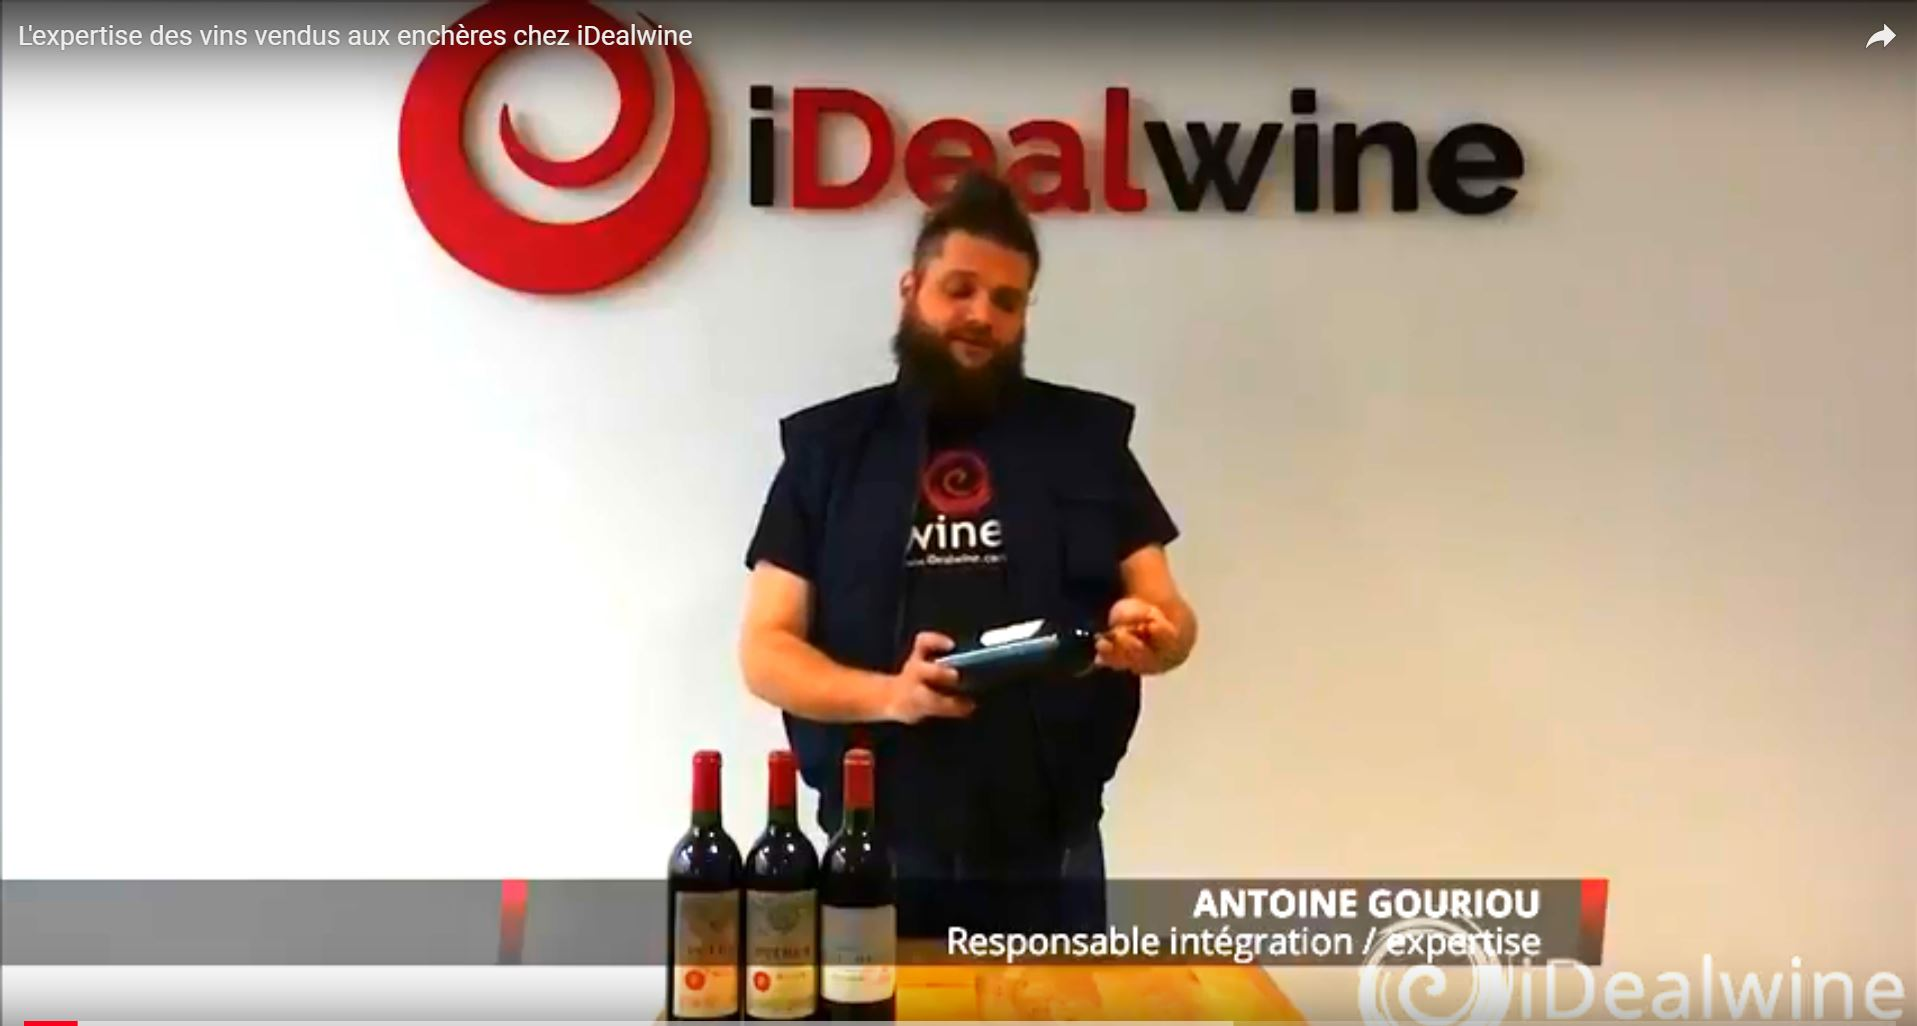 Expertise vins encheres iDealwine